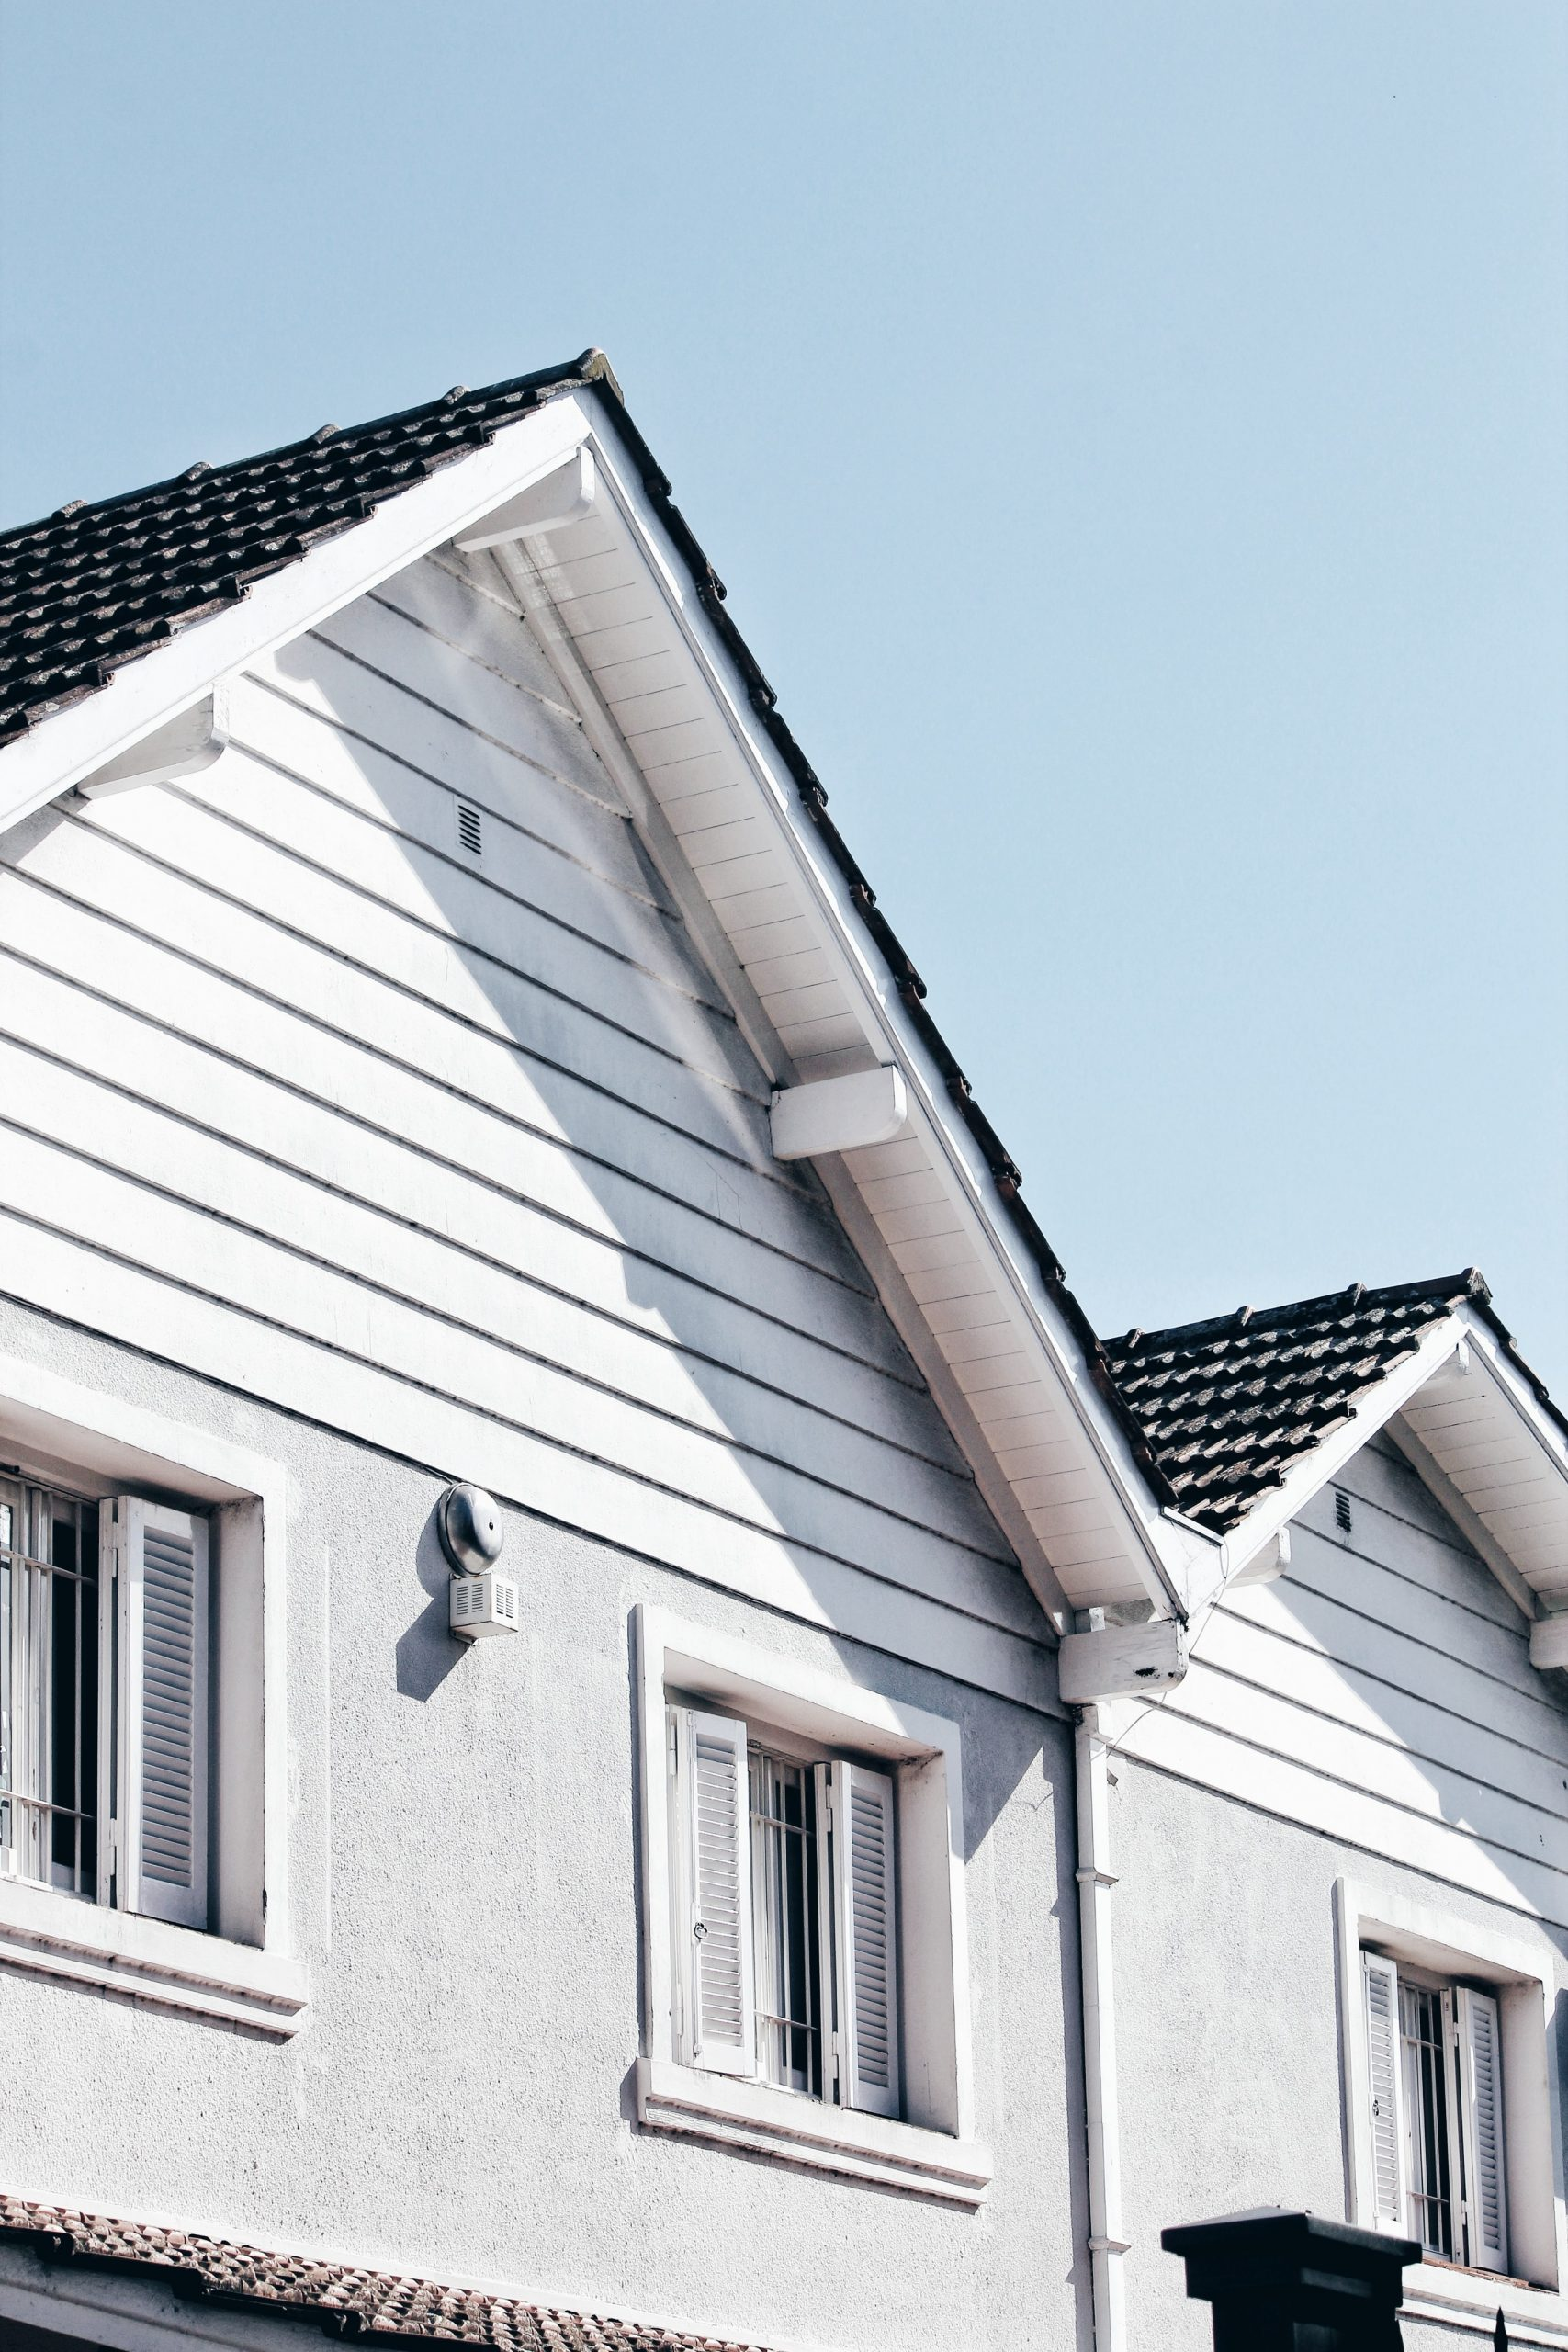 Looking For A New Roof? What's Better, Metal Roofs Vs. Shingles?